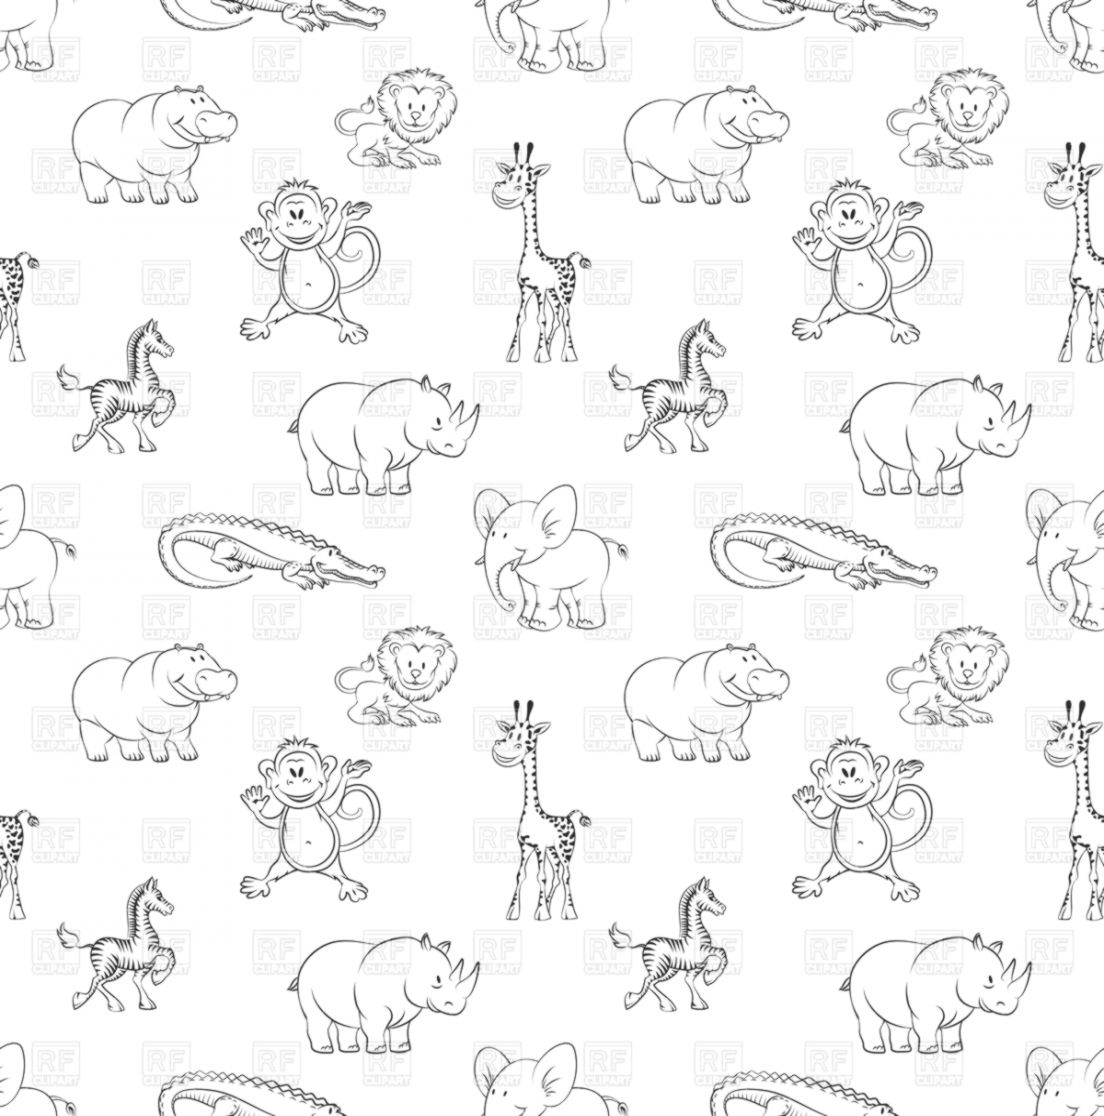 desember 2018 just wallpapers 1080P HD Wallpapers City wild animals lion elephant and zebra seamless pattern in cartoon